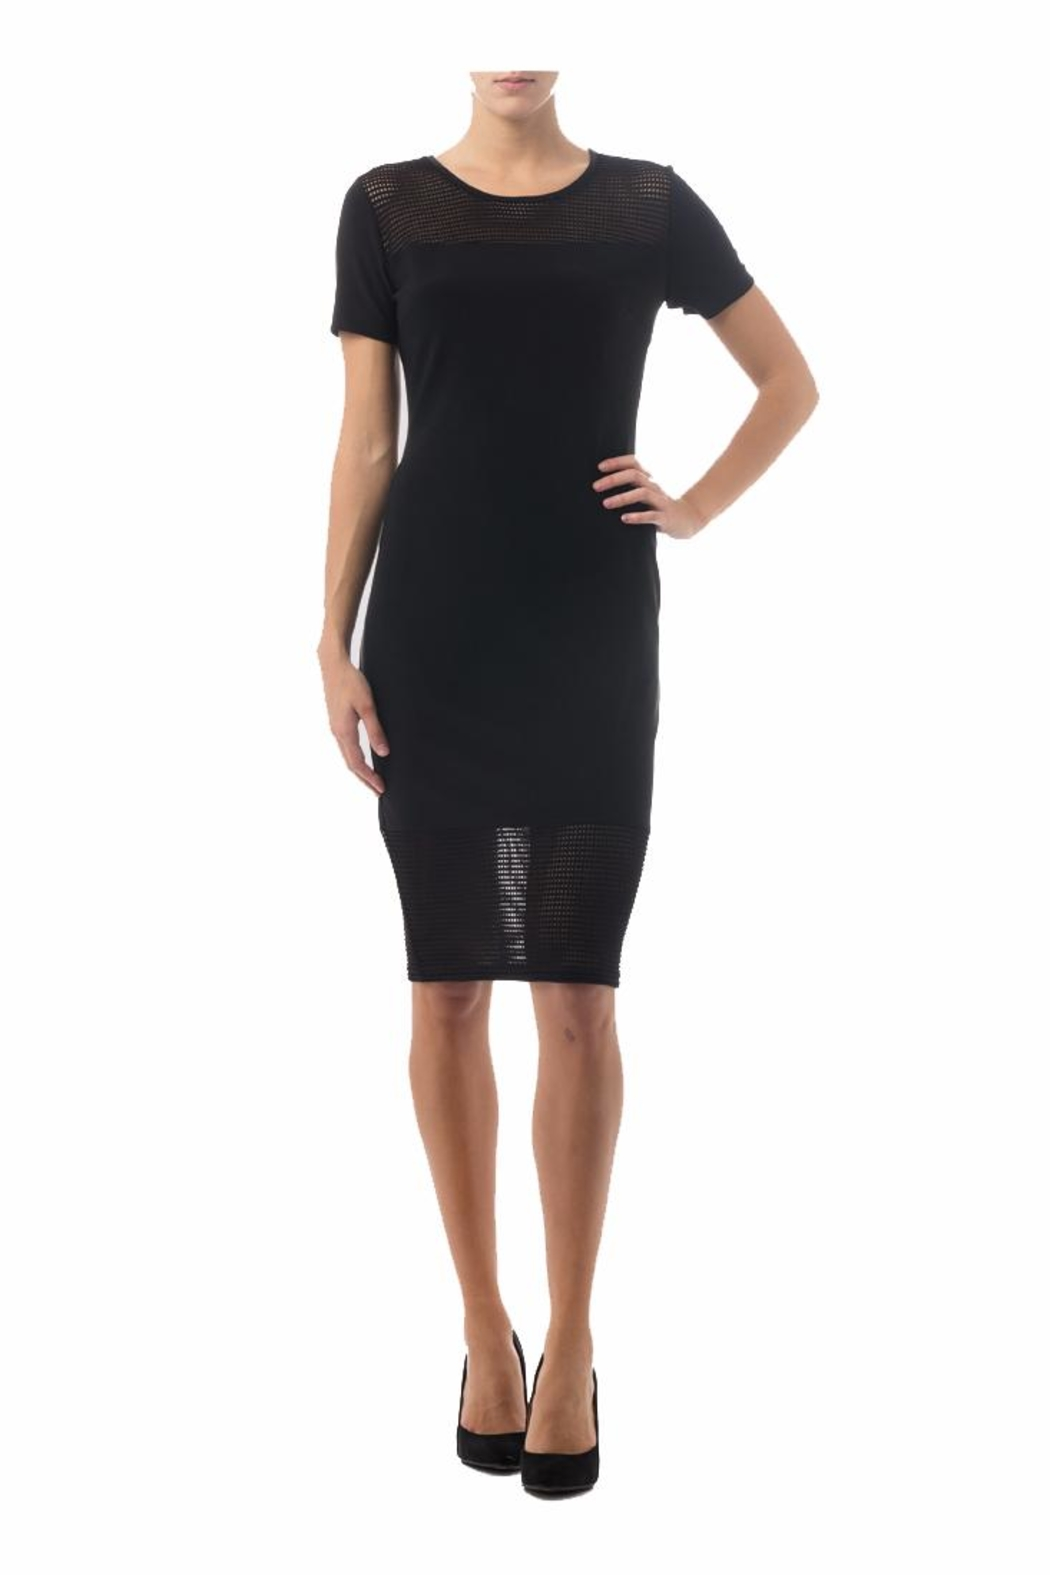 Joseph Ribkoff Mesh Detail Black Dress - Main Image